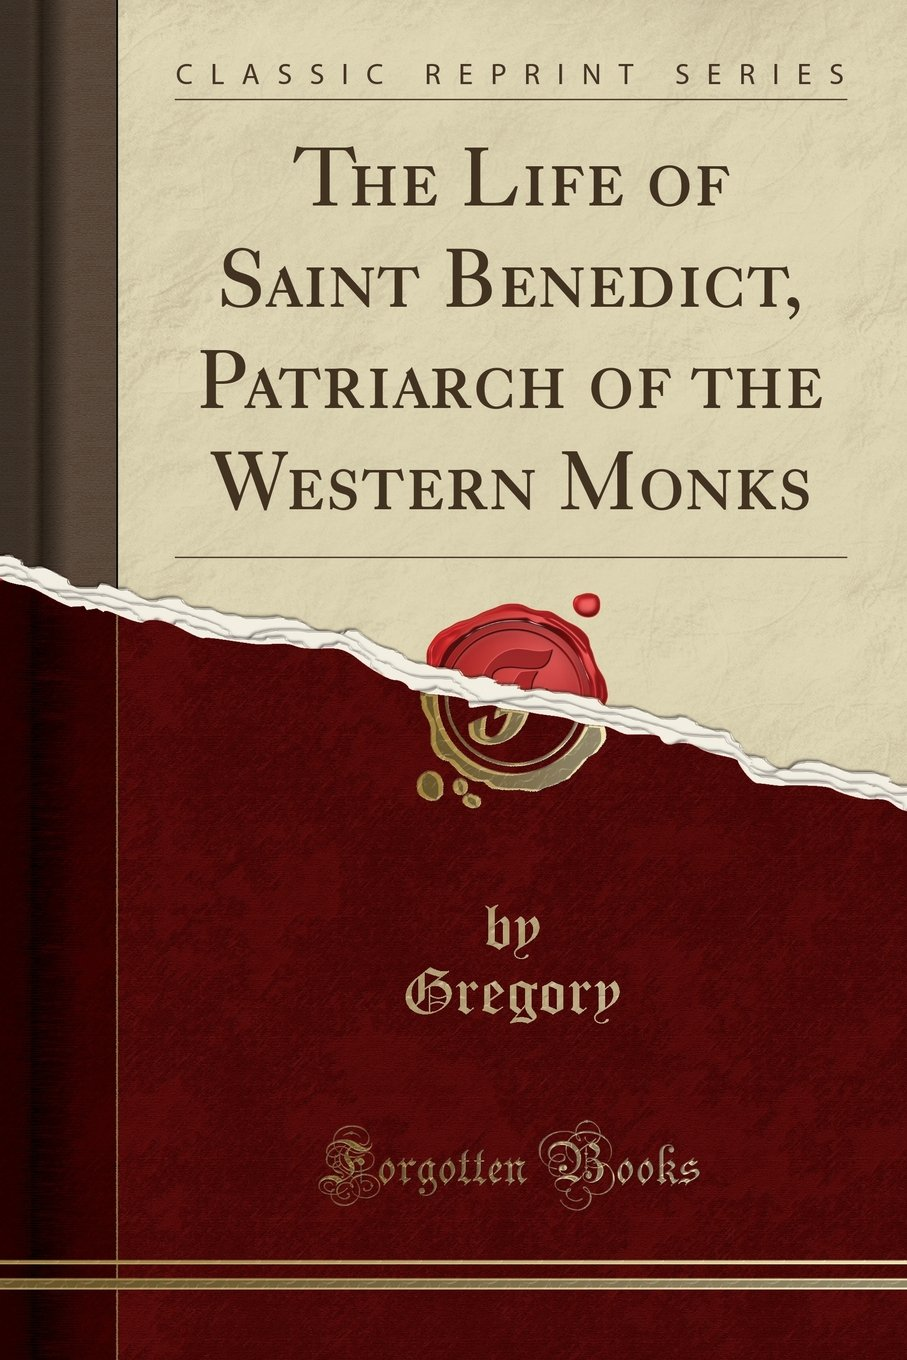 The Life of Saint Benedict, Patriarch of the Western Monks (Classic Reprint) PDF